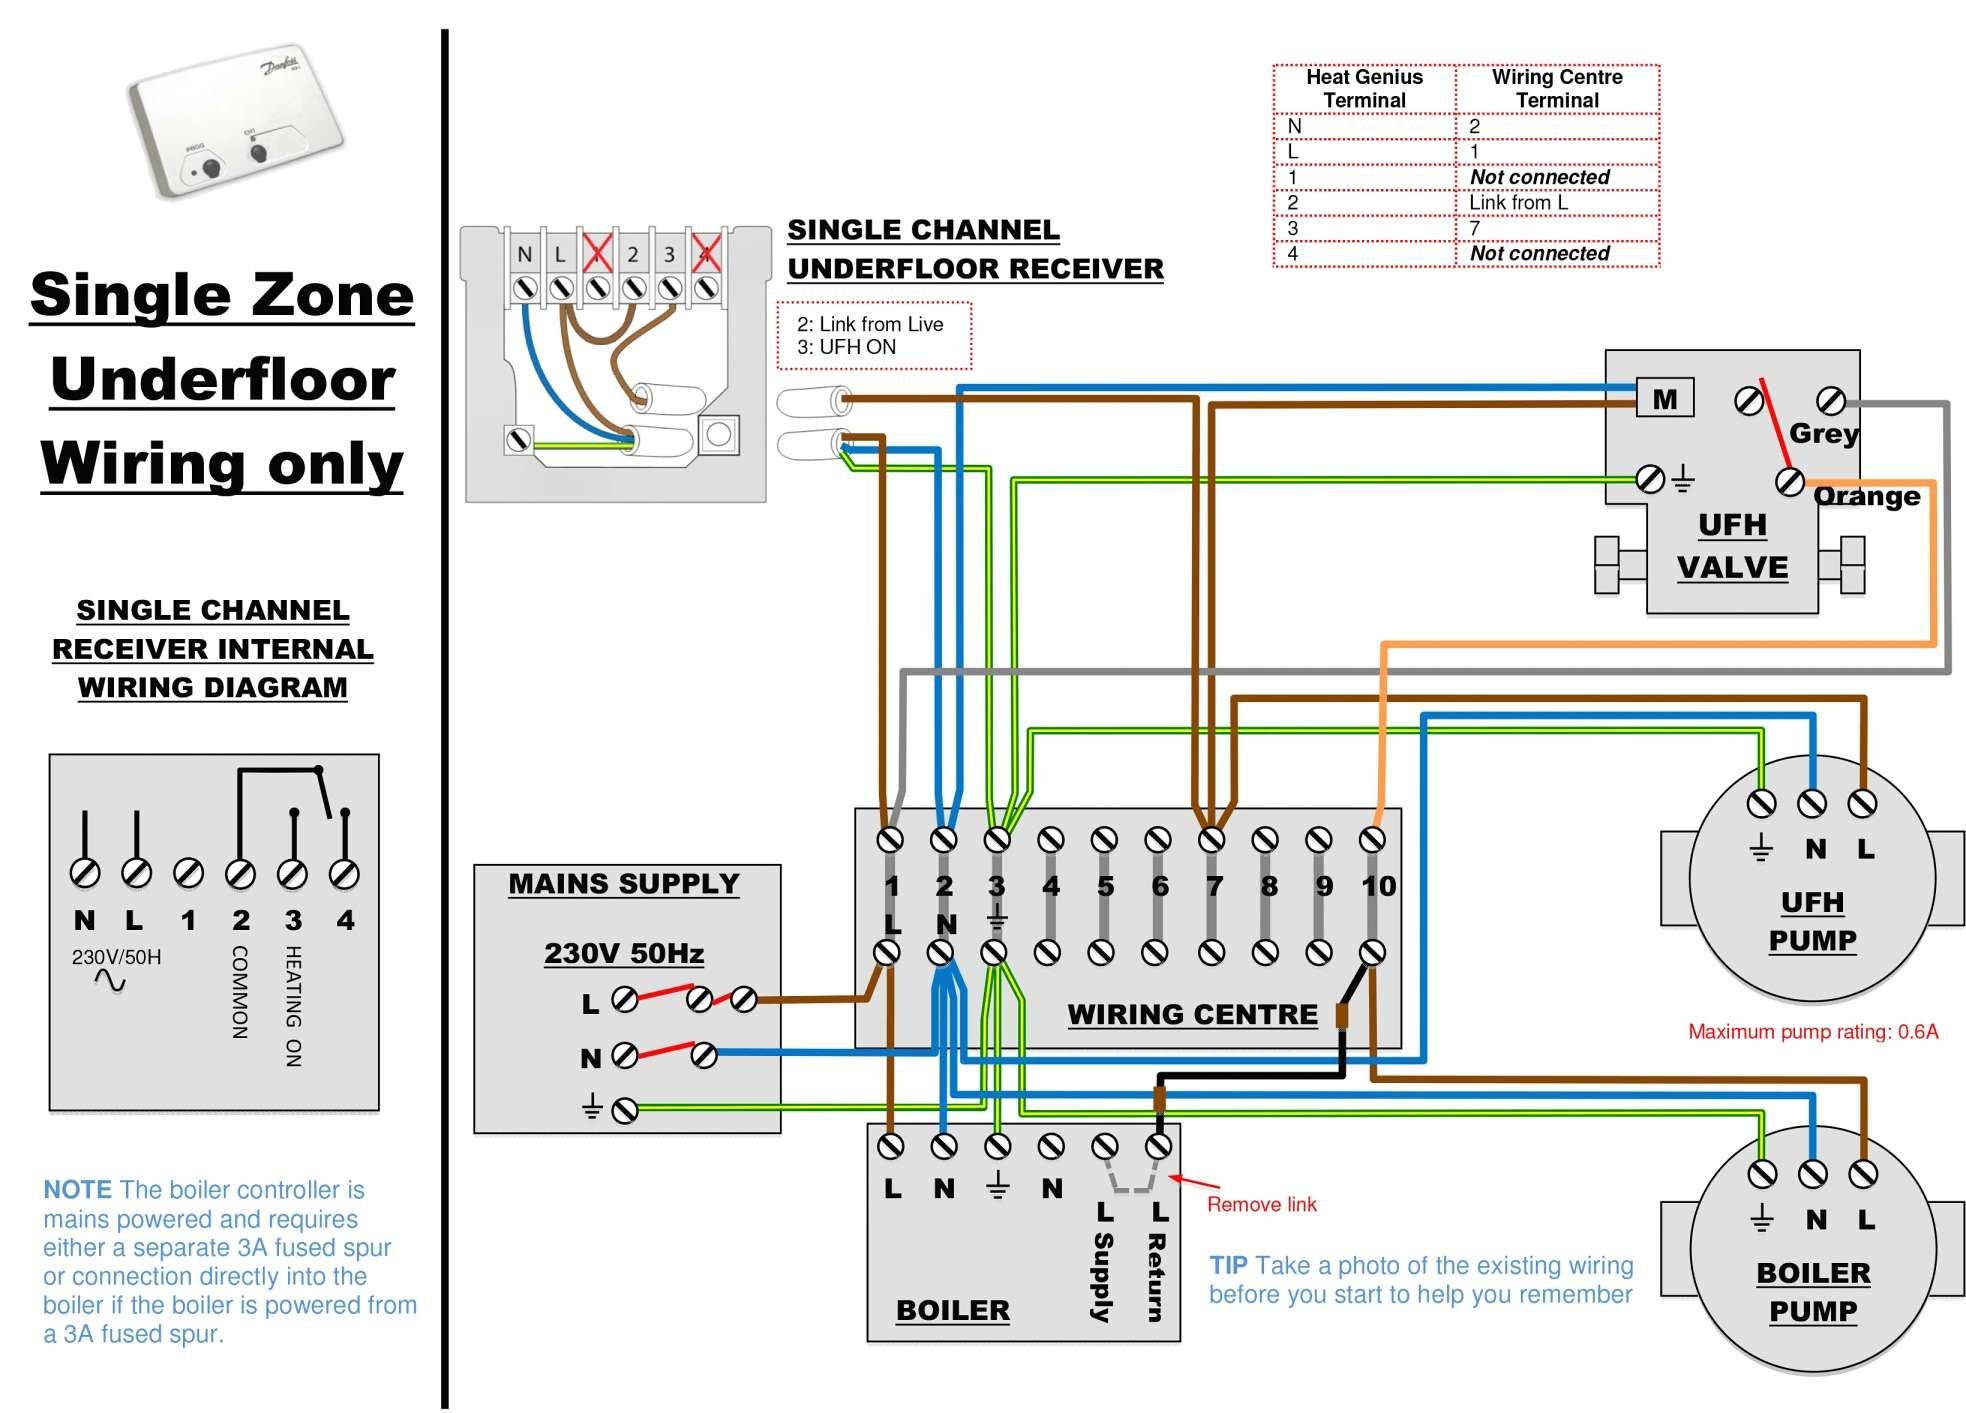 electric heater wiring diagrams 16 electric floor heating wiring diagram wiring diagram in 2020 electric baseboard heater wiring diagram thermostat electric floor heating wiring diagram